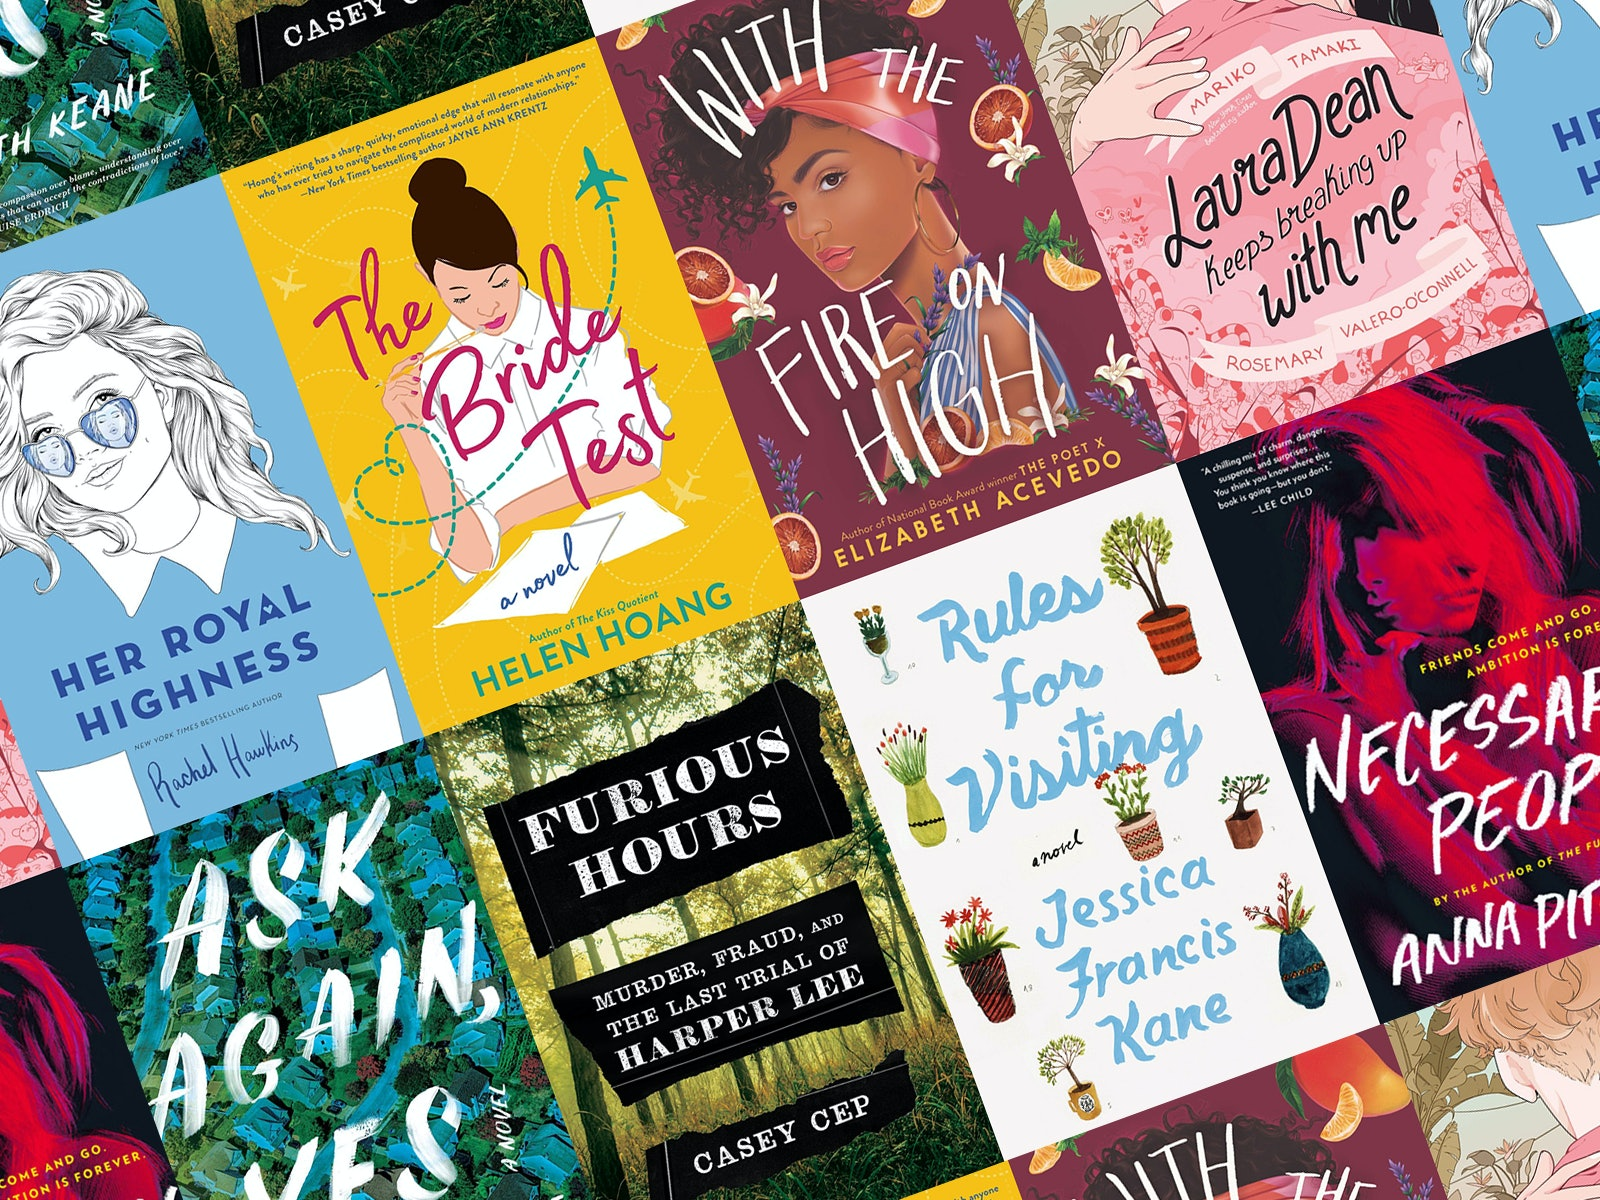 45 New Books Coming Out In May 2019 To Add To Your Memorial